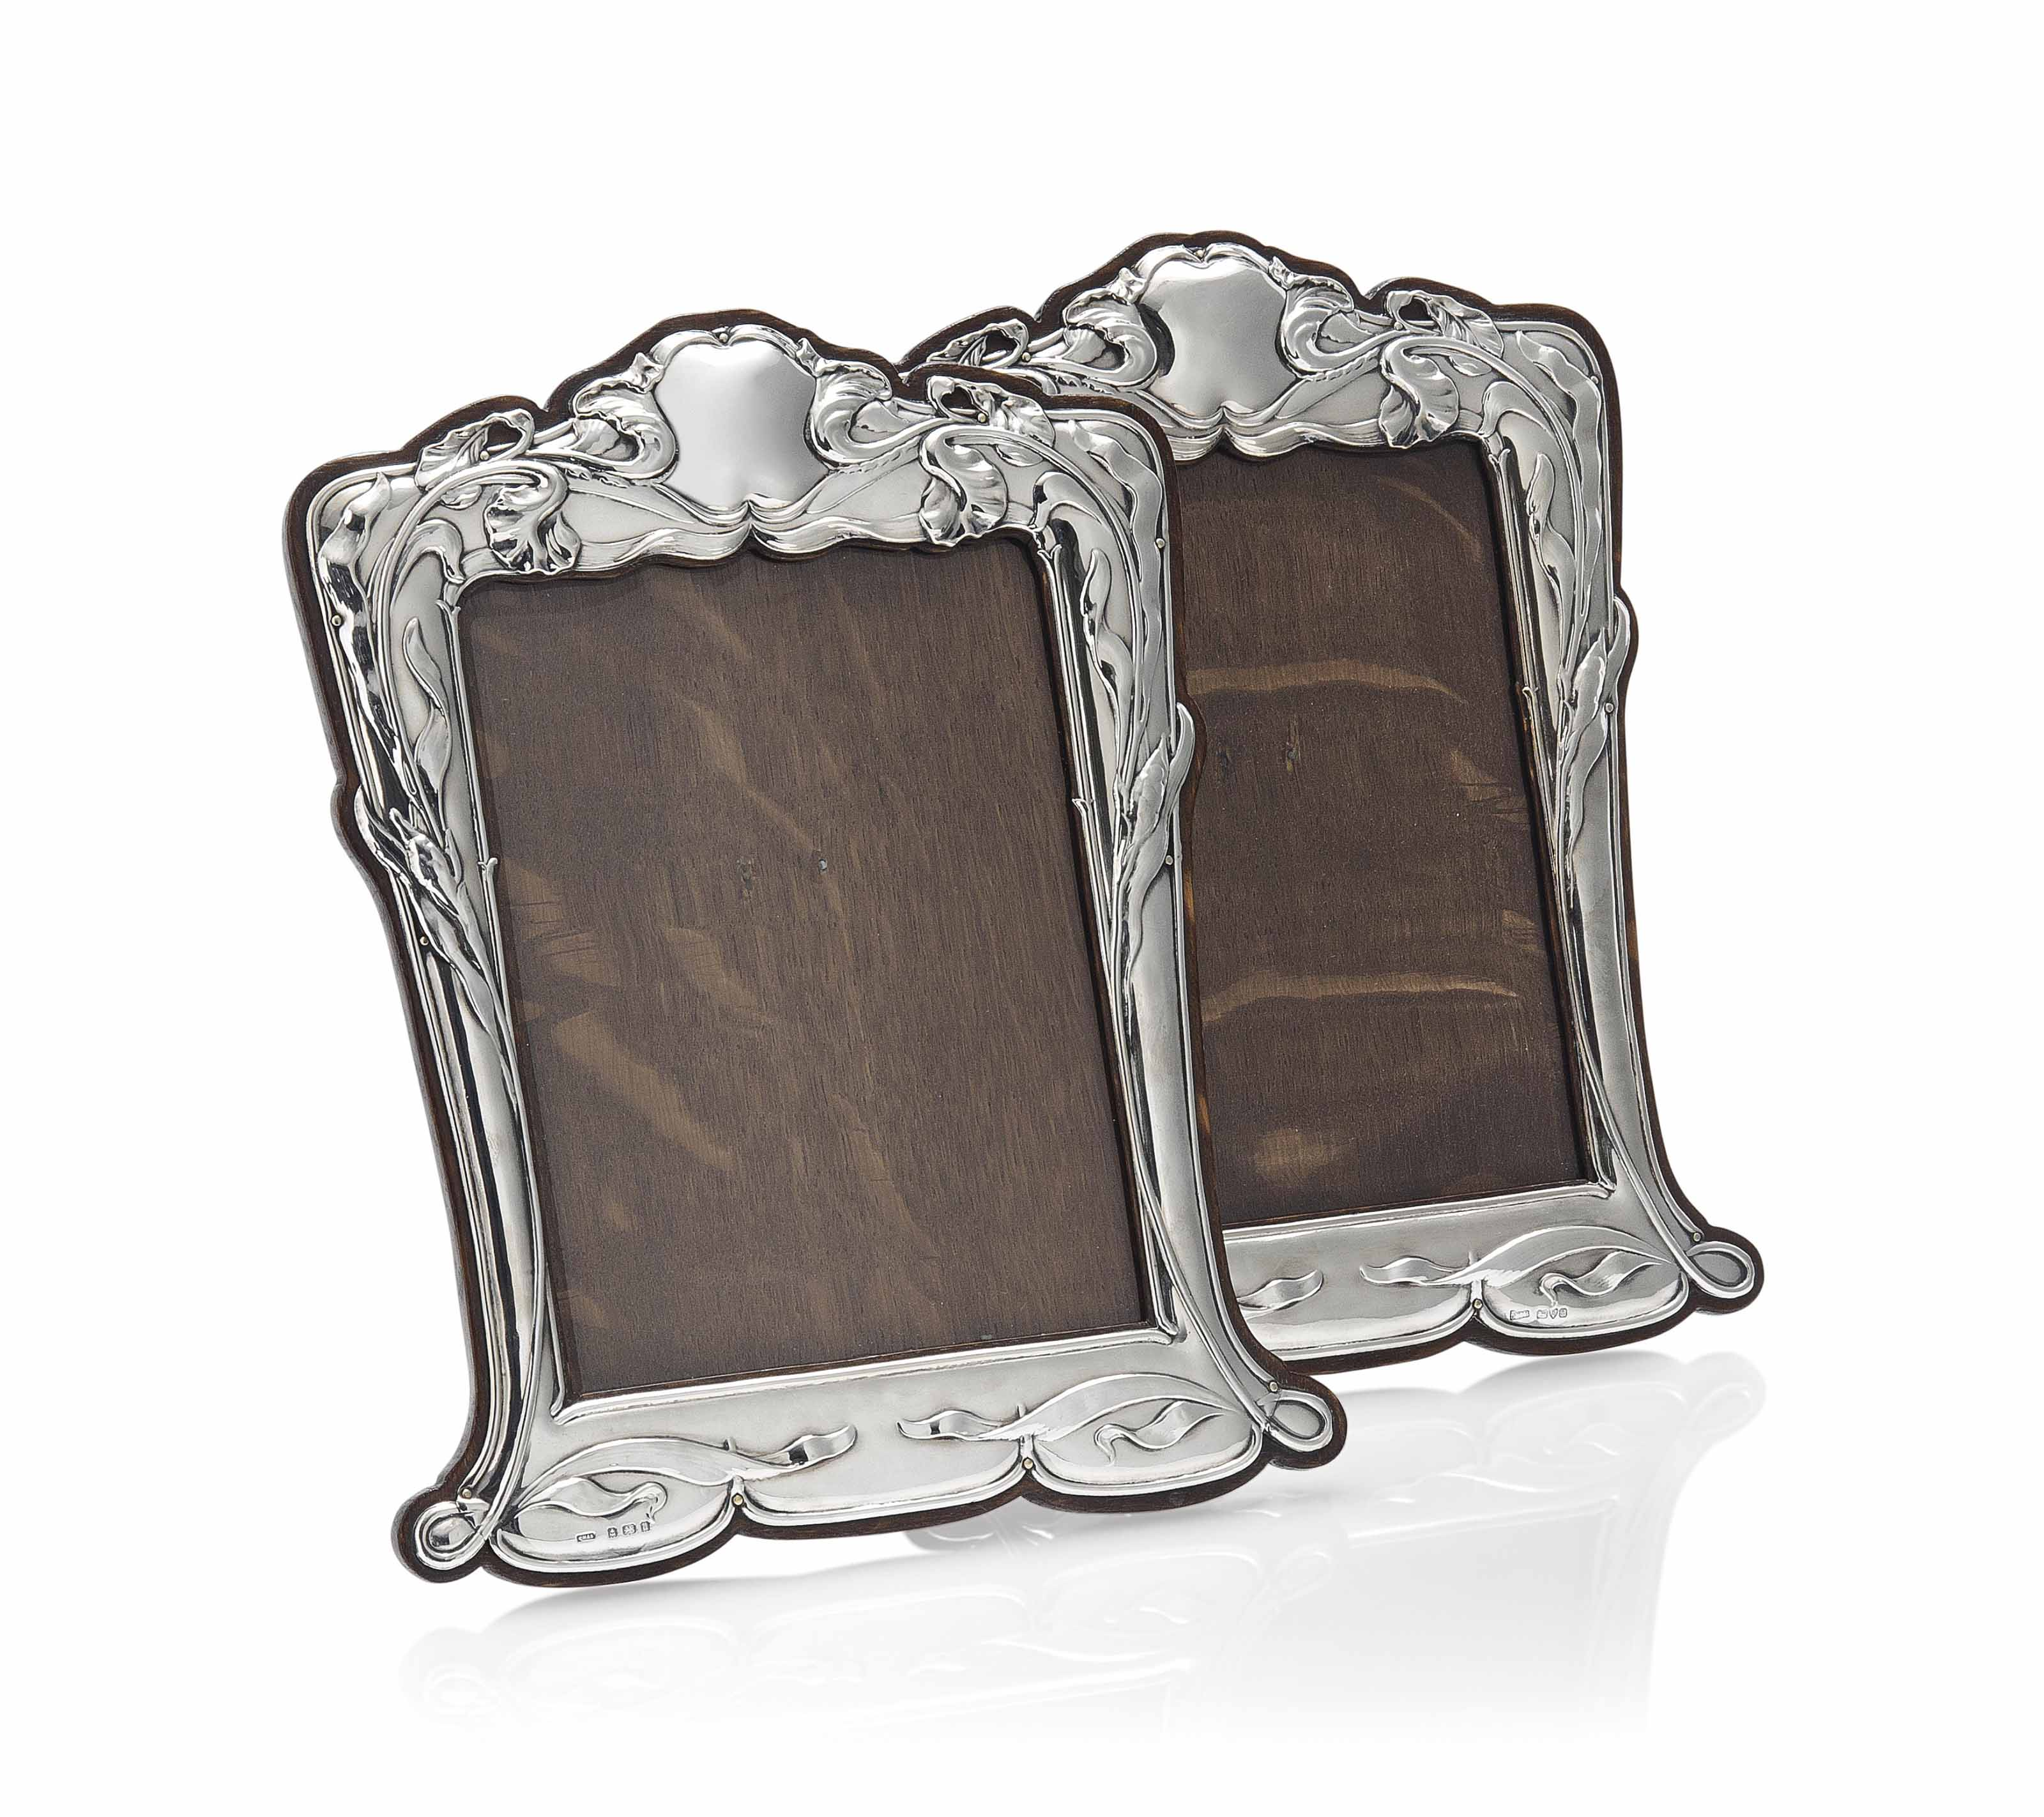 A MATCHED PAIR OF SILVER AND MAHOGANY PHOTOGRAPH FRAMES